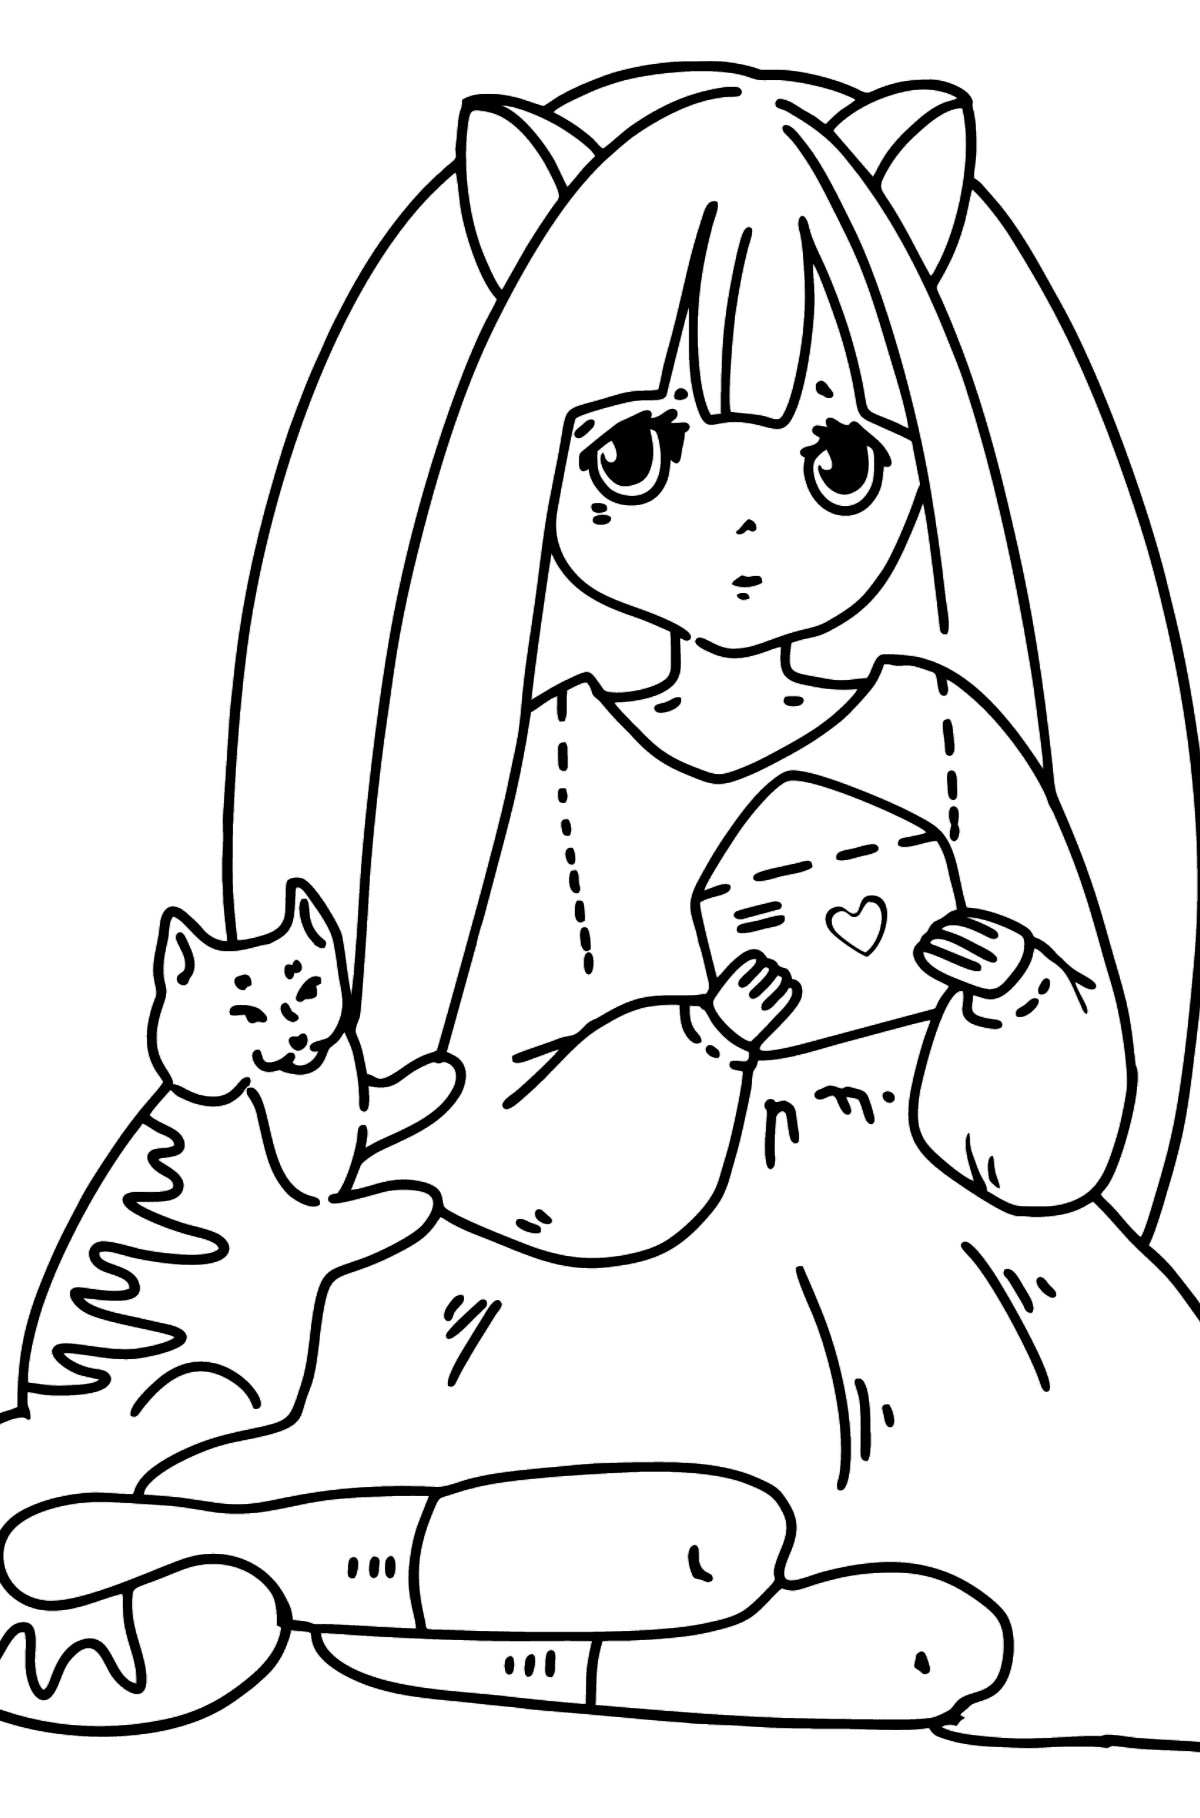 Anime Cute Girl Coloring Pages - Coloring Pages for Kids